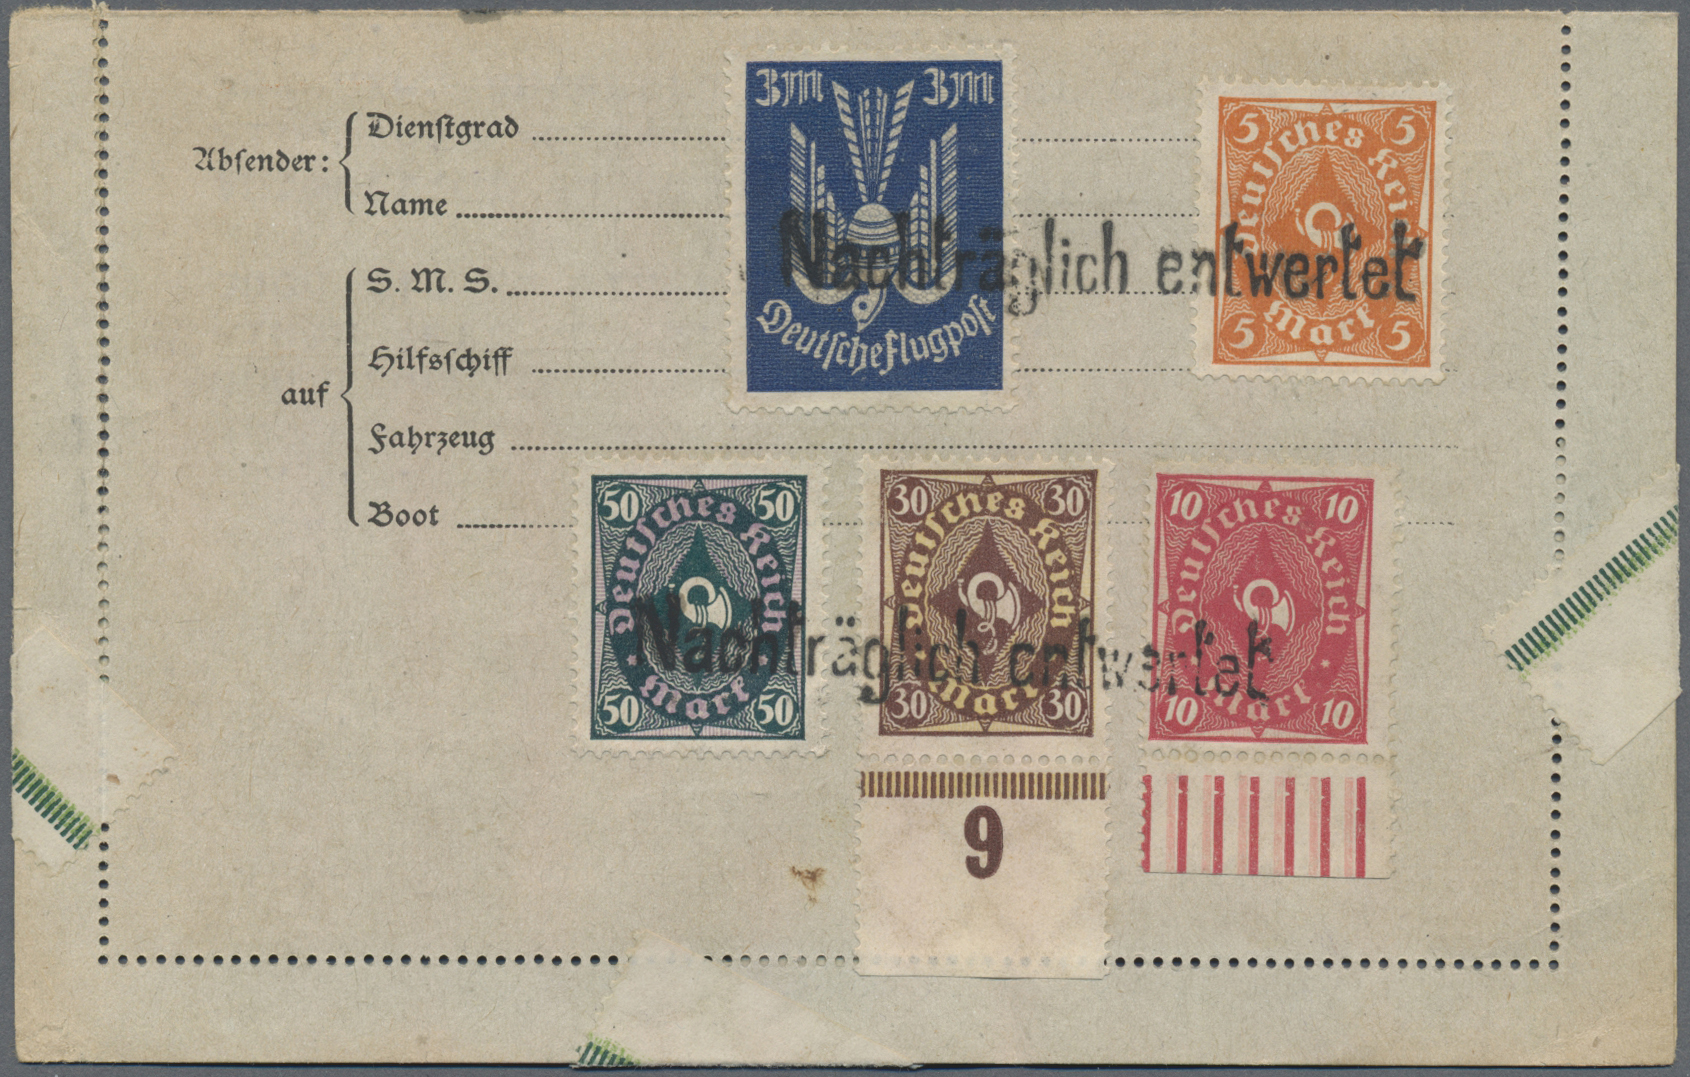 Lot 36857 - deutsches reich - stempel  -  Auktionshaus Christoph Gärtner GmbH & Co. KG Sale #44 Collections Germany